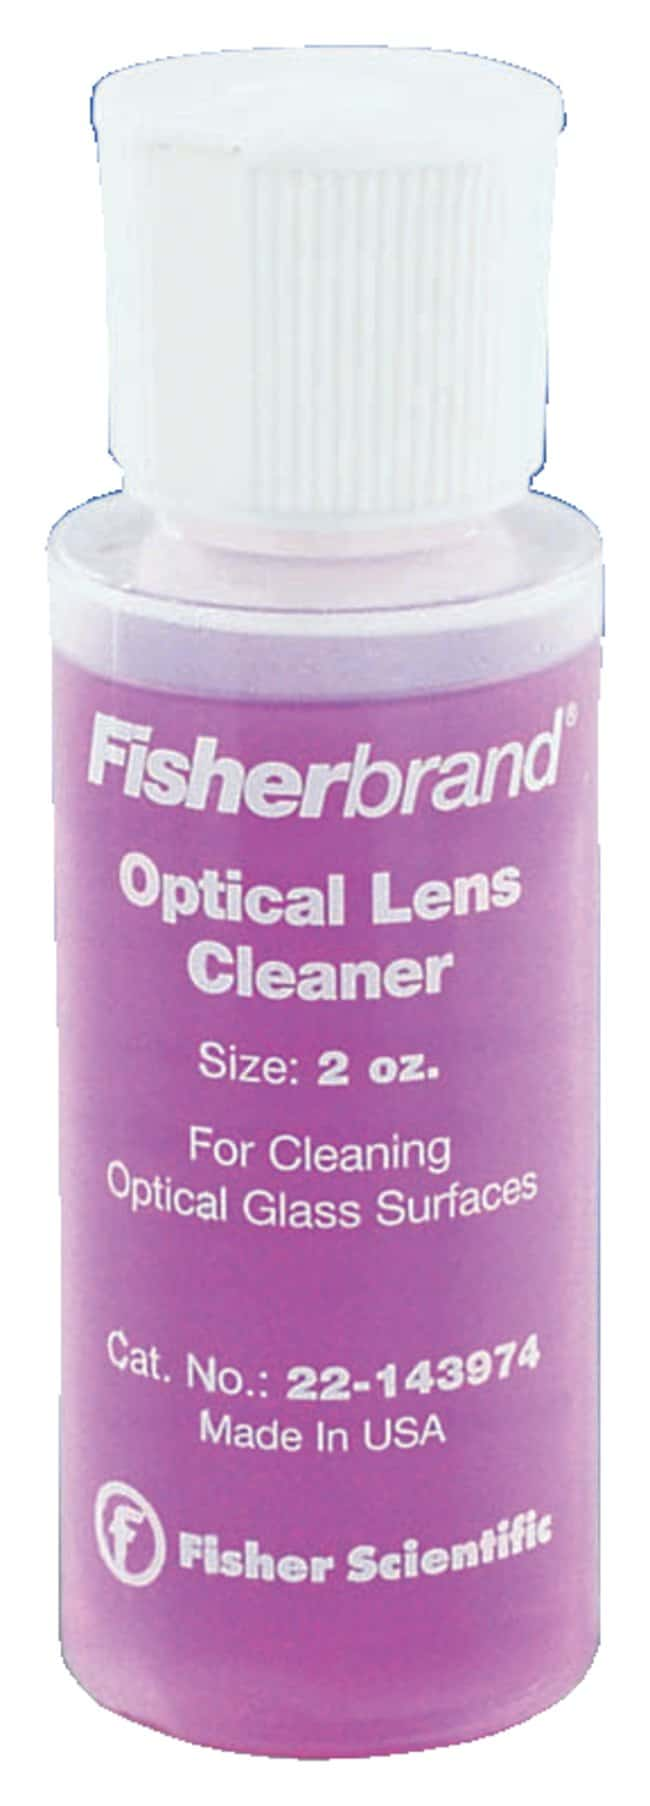 Fisherbrand Optical Lens Cleaner  2 oz.(59mL):Teaching Supplies